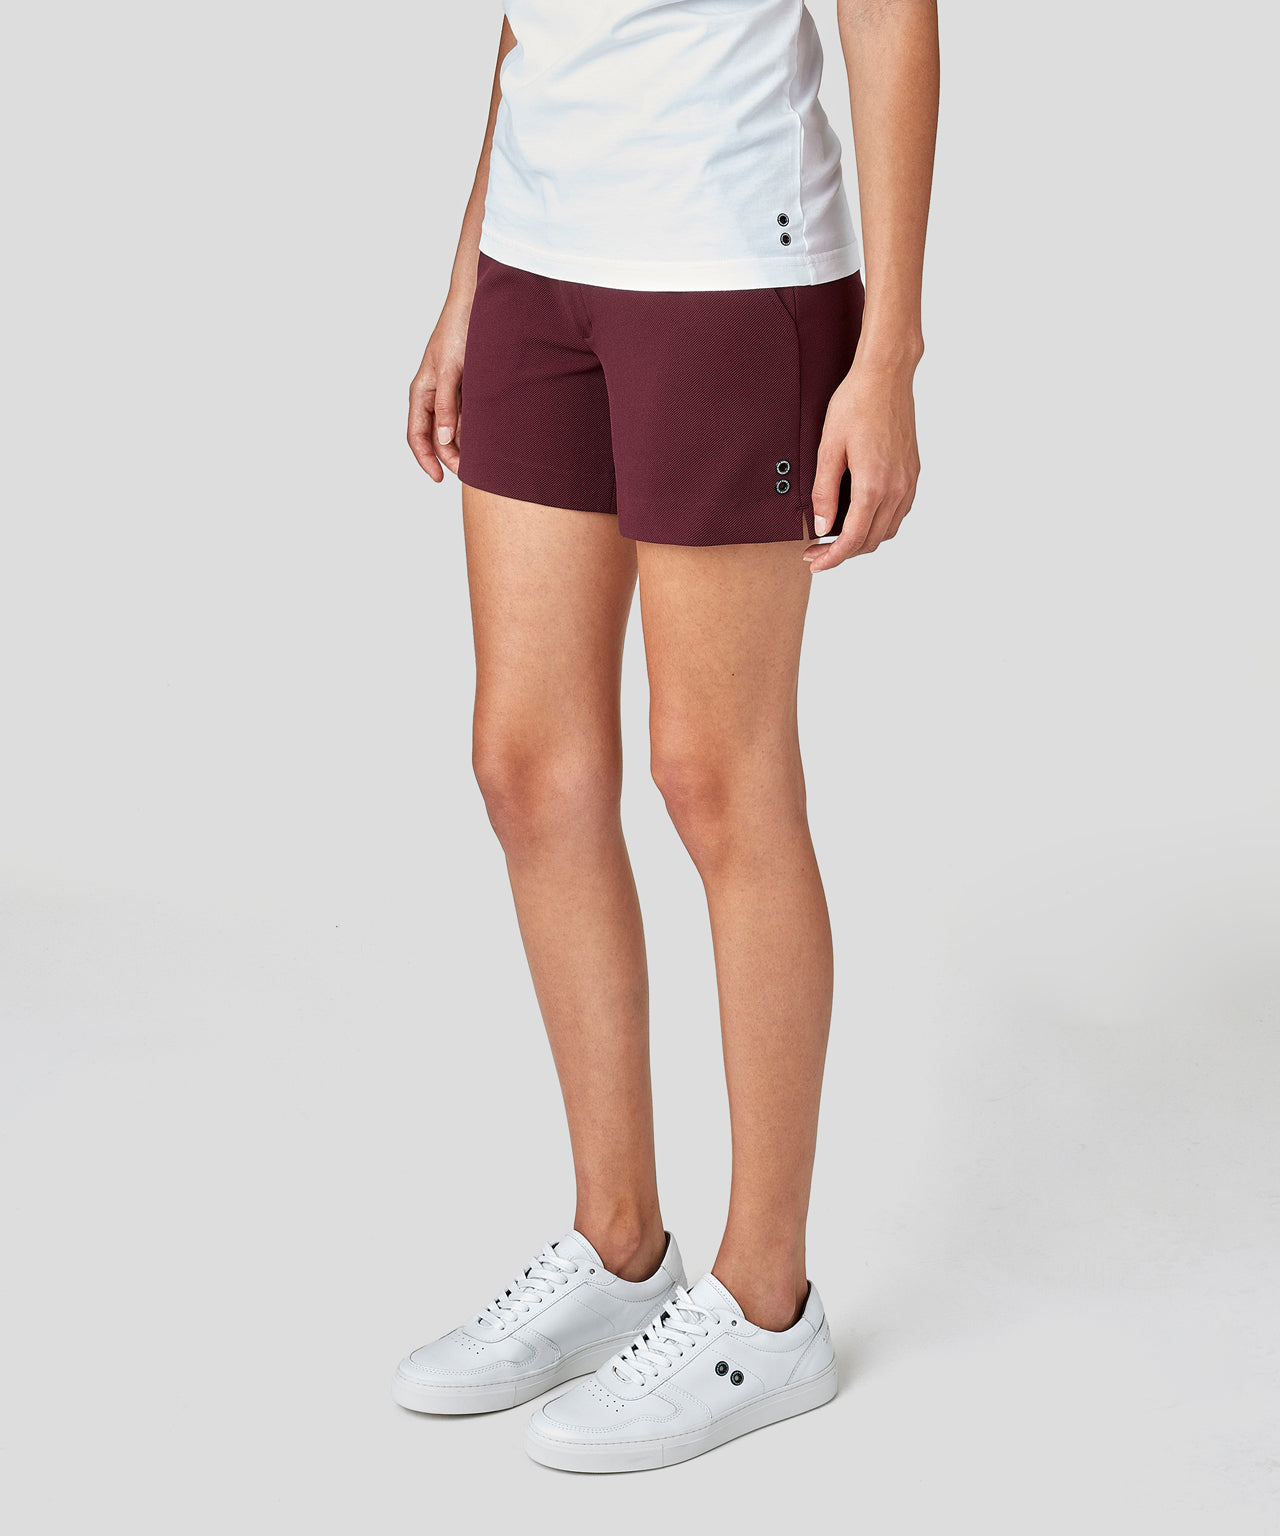 Tennis Shorts His For Her - burgundy red